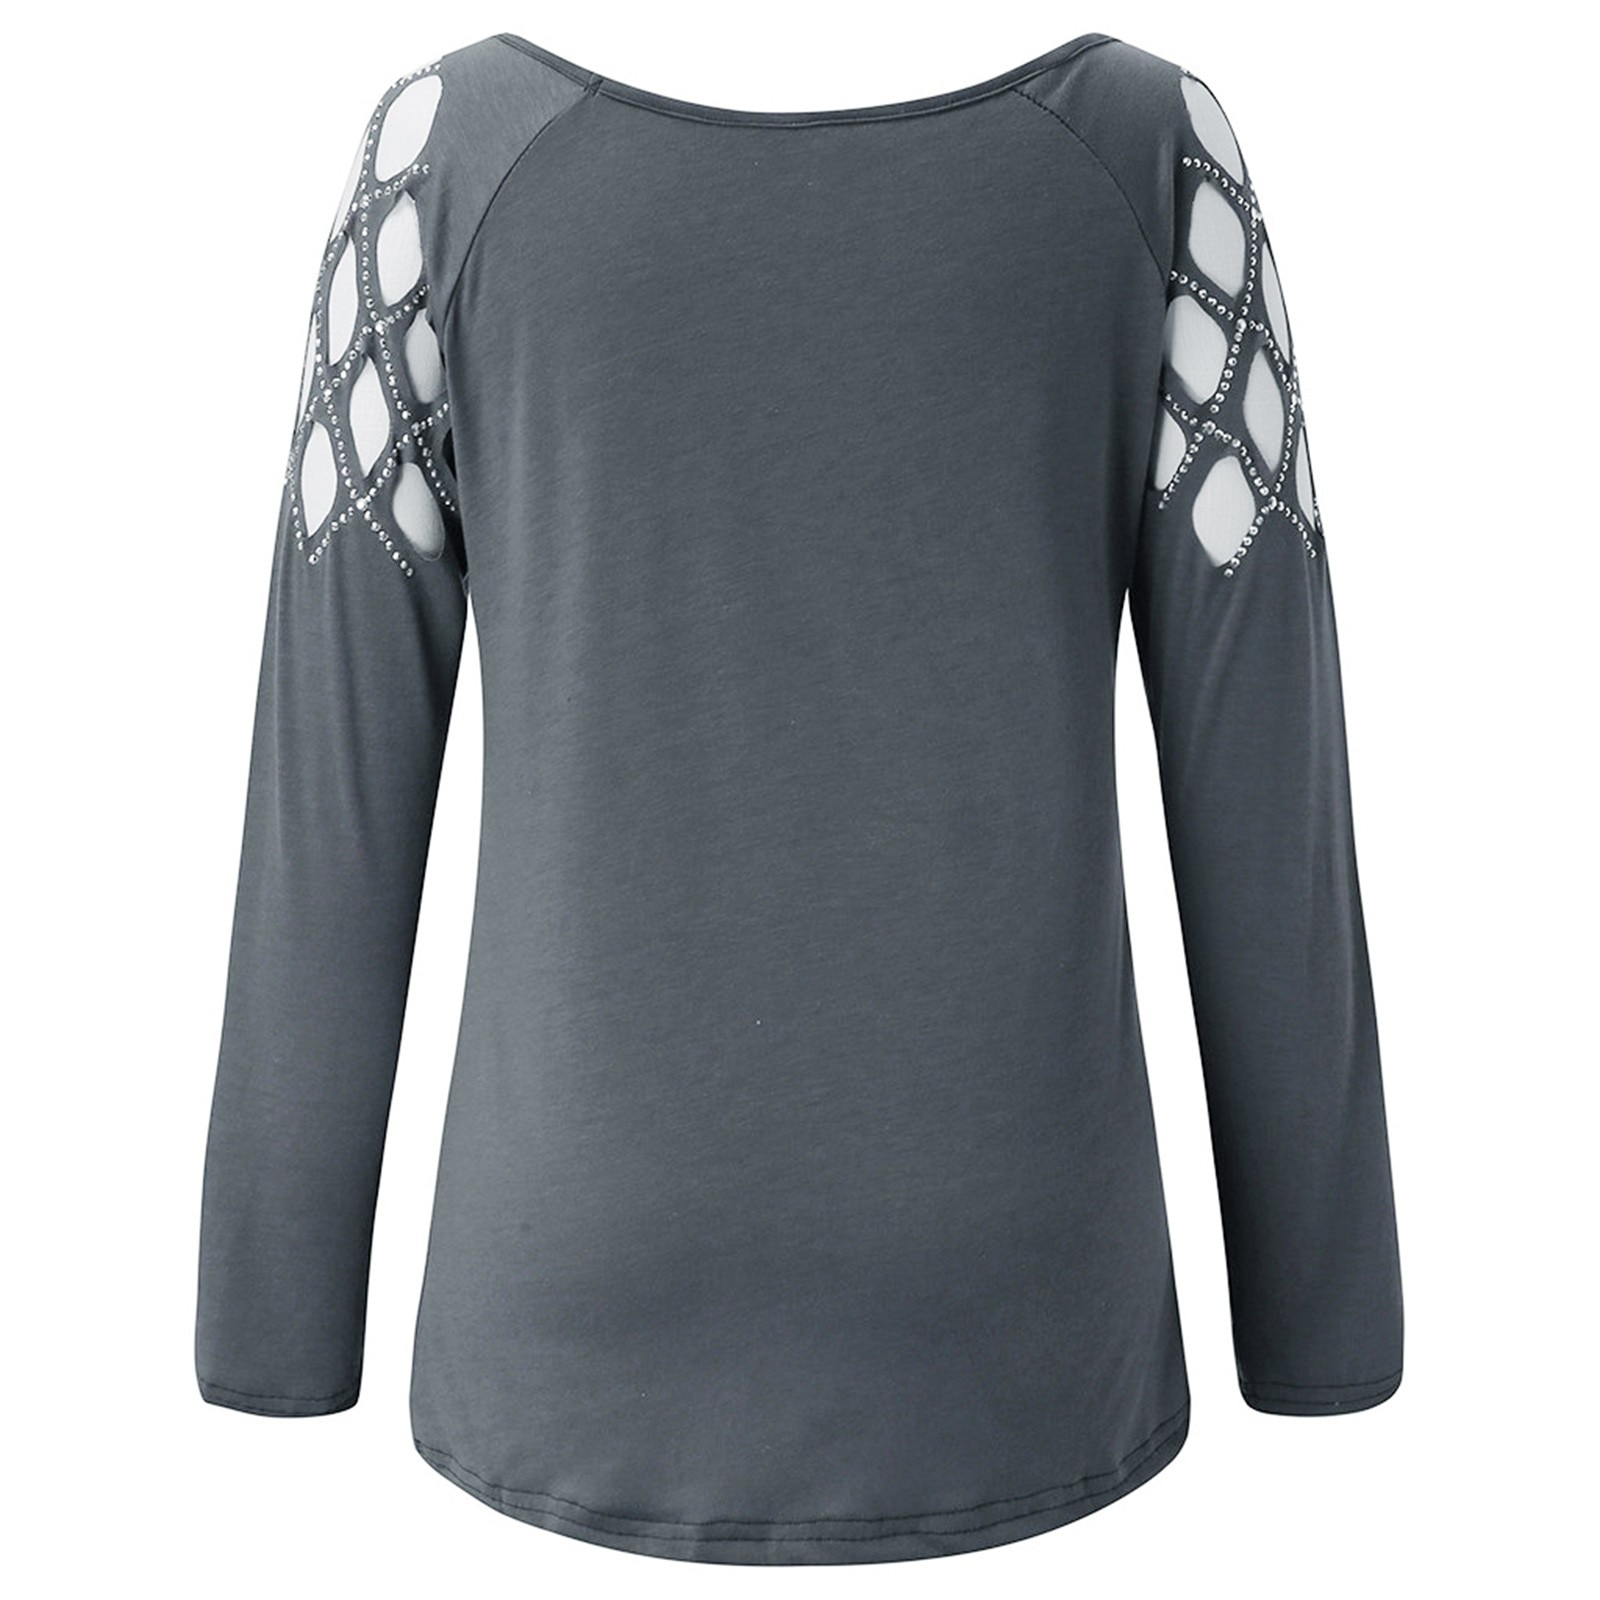 1046 Women Fashion C Neck Hollow-Out Studded Long Sleeve T Shirts Casual Tops Long Sleeve T Shirts Casual Tops Casual Clothes